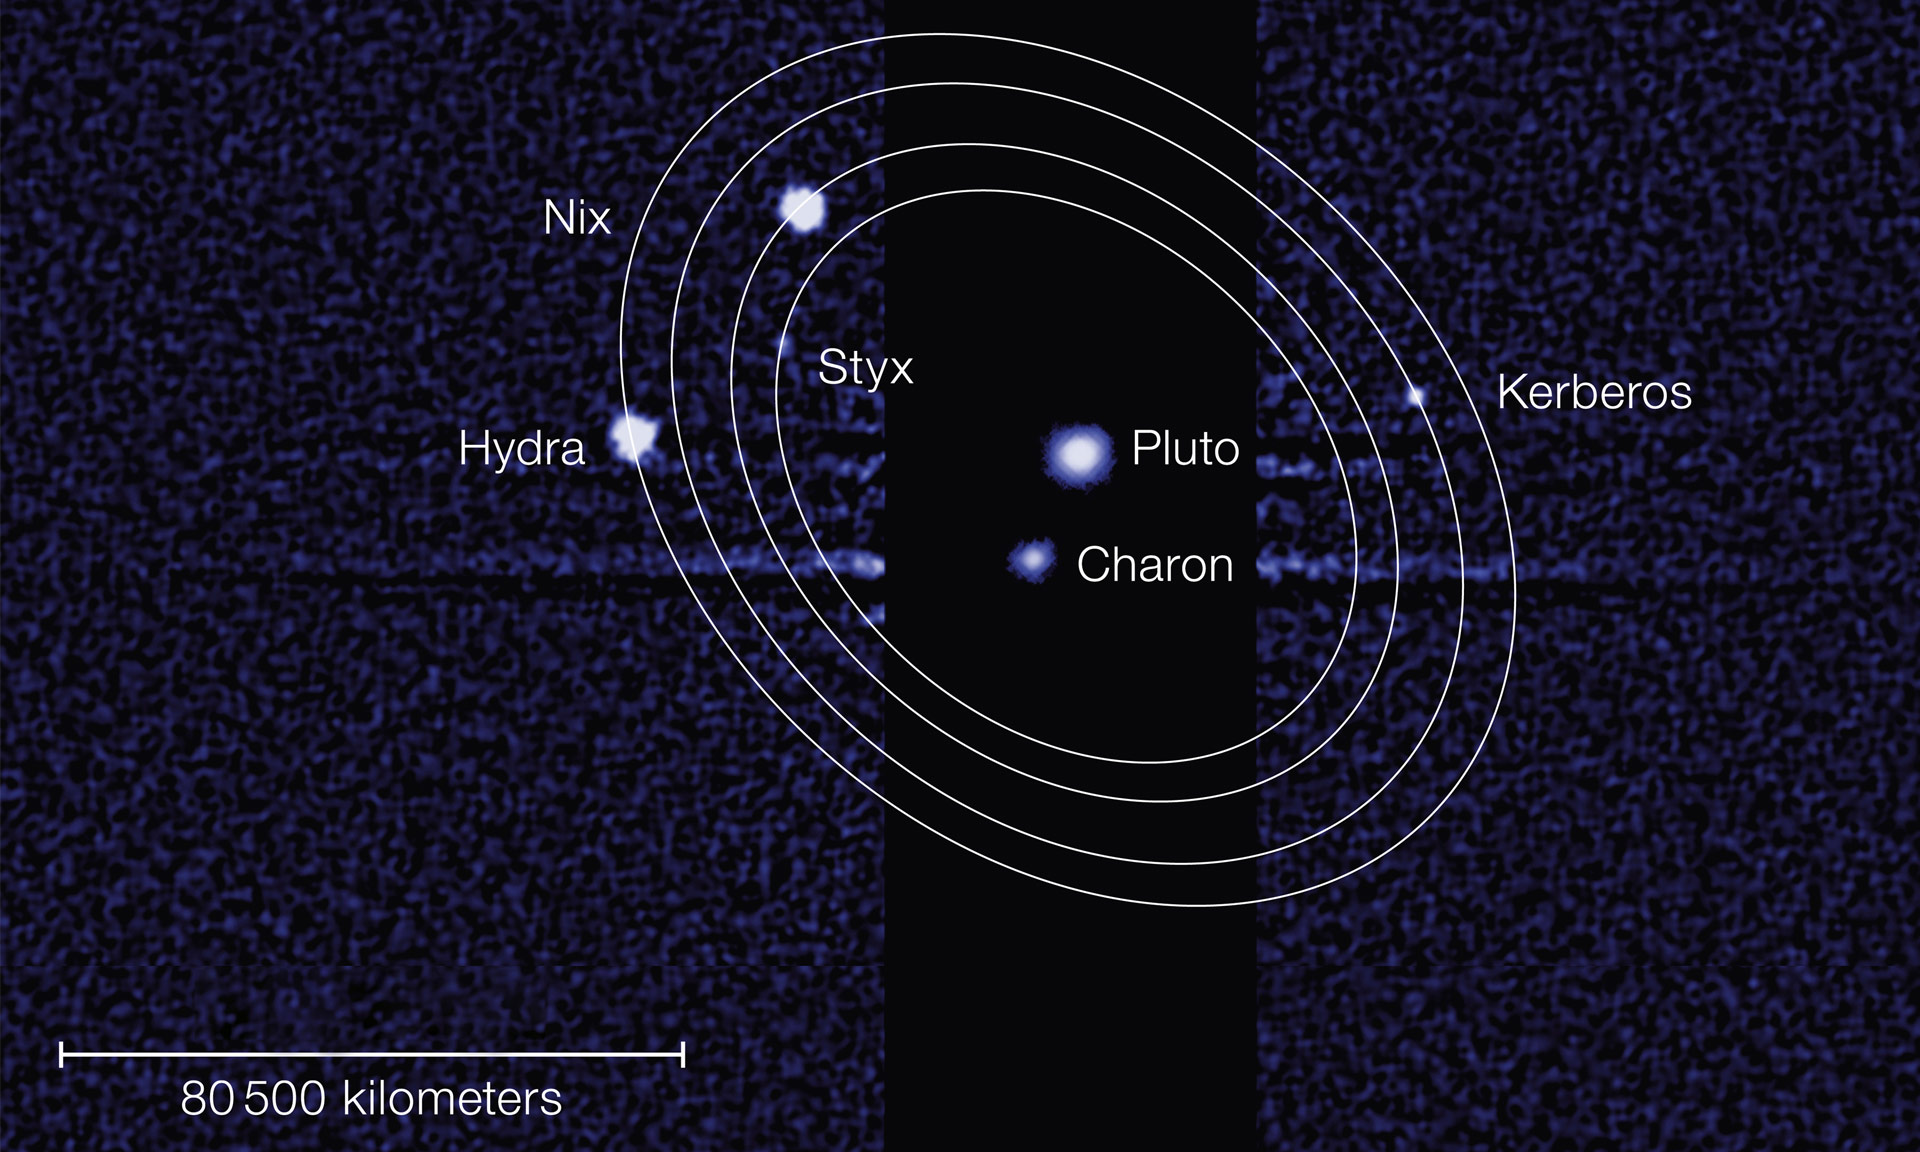 Kerberos Moon Of Plluto: Closing In On Planet Pluto: An Interview With New Horizons